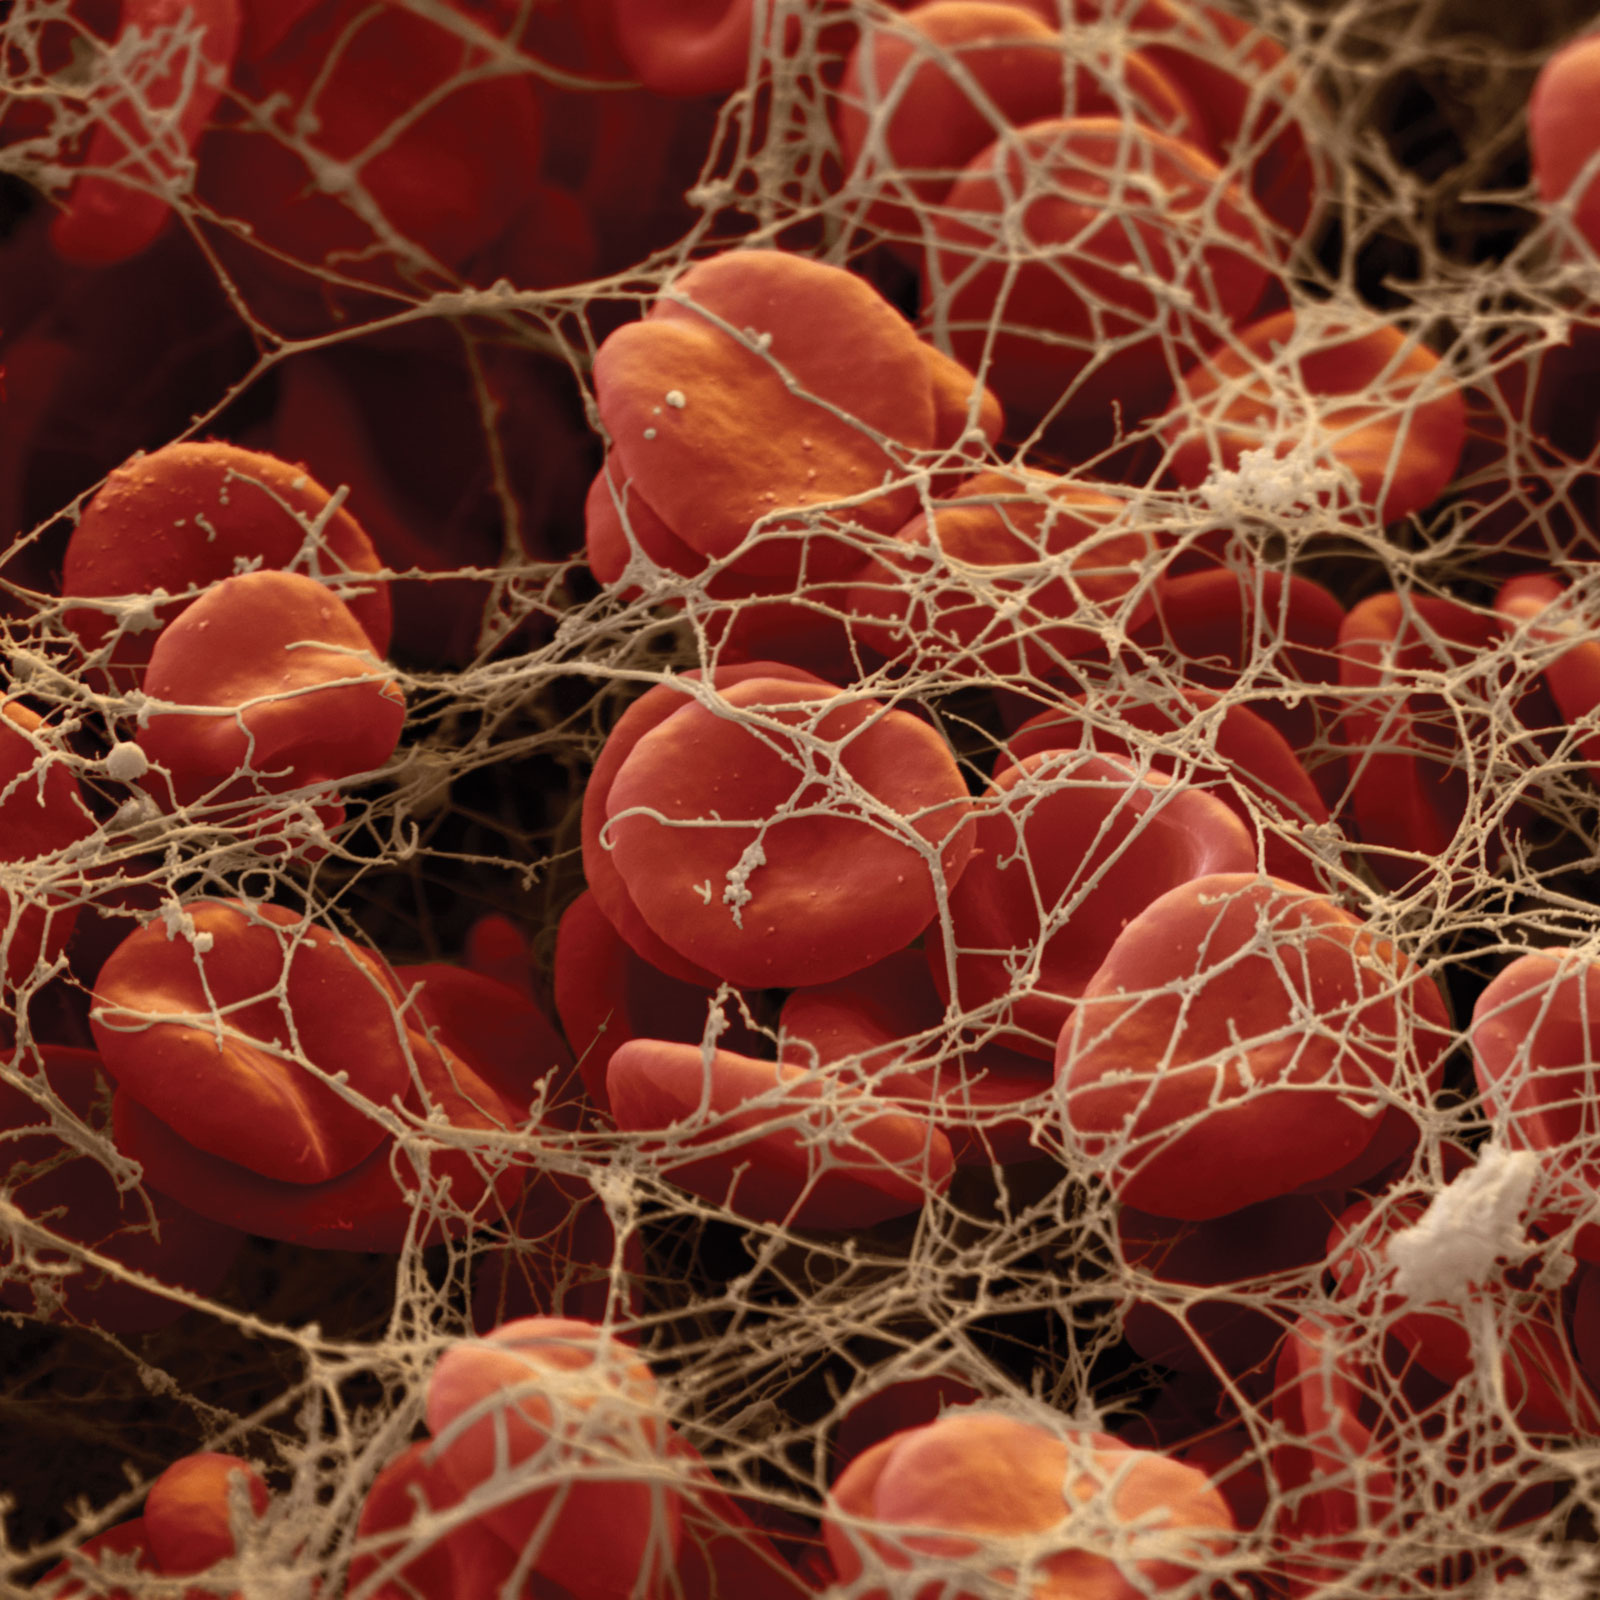 blood clotting This guide describes ways to prevent and treat blood clots, symptoms, and medication side effects as well as when to go to the emergency room.